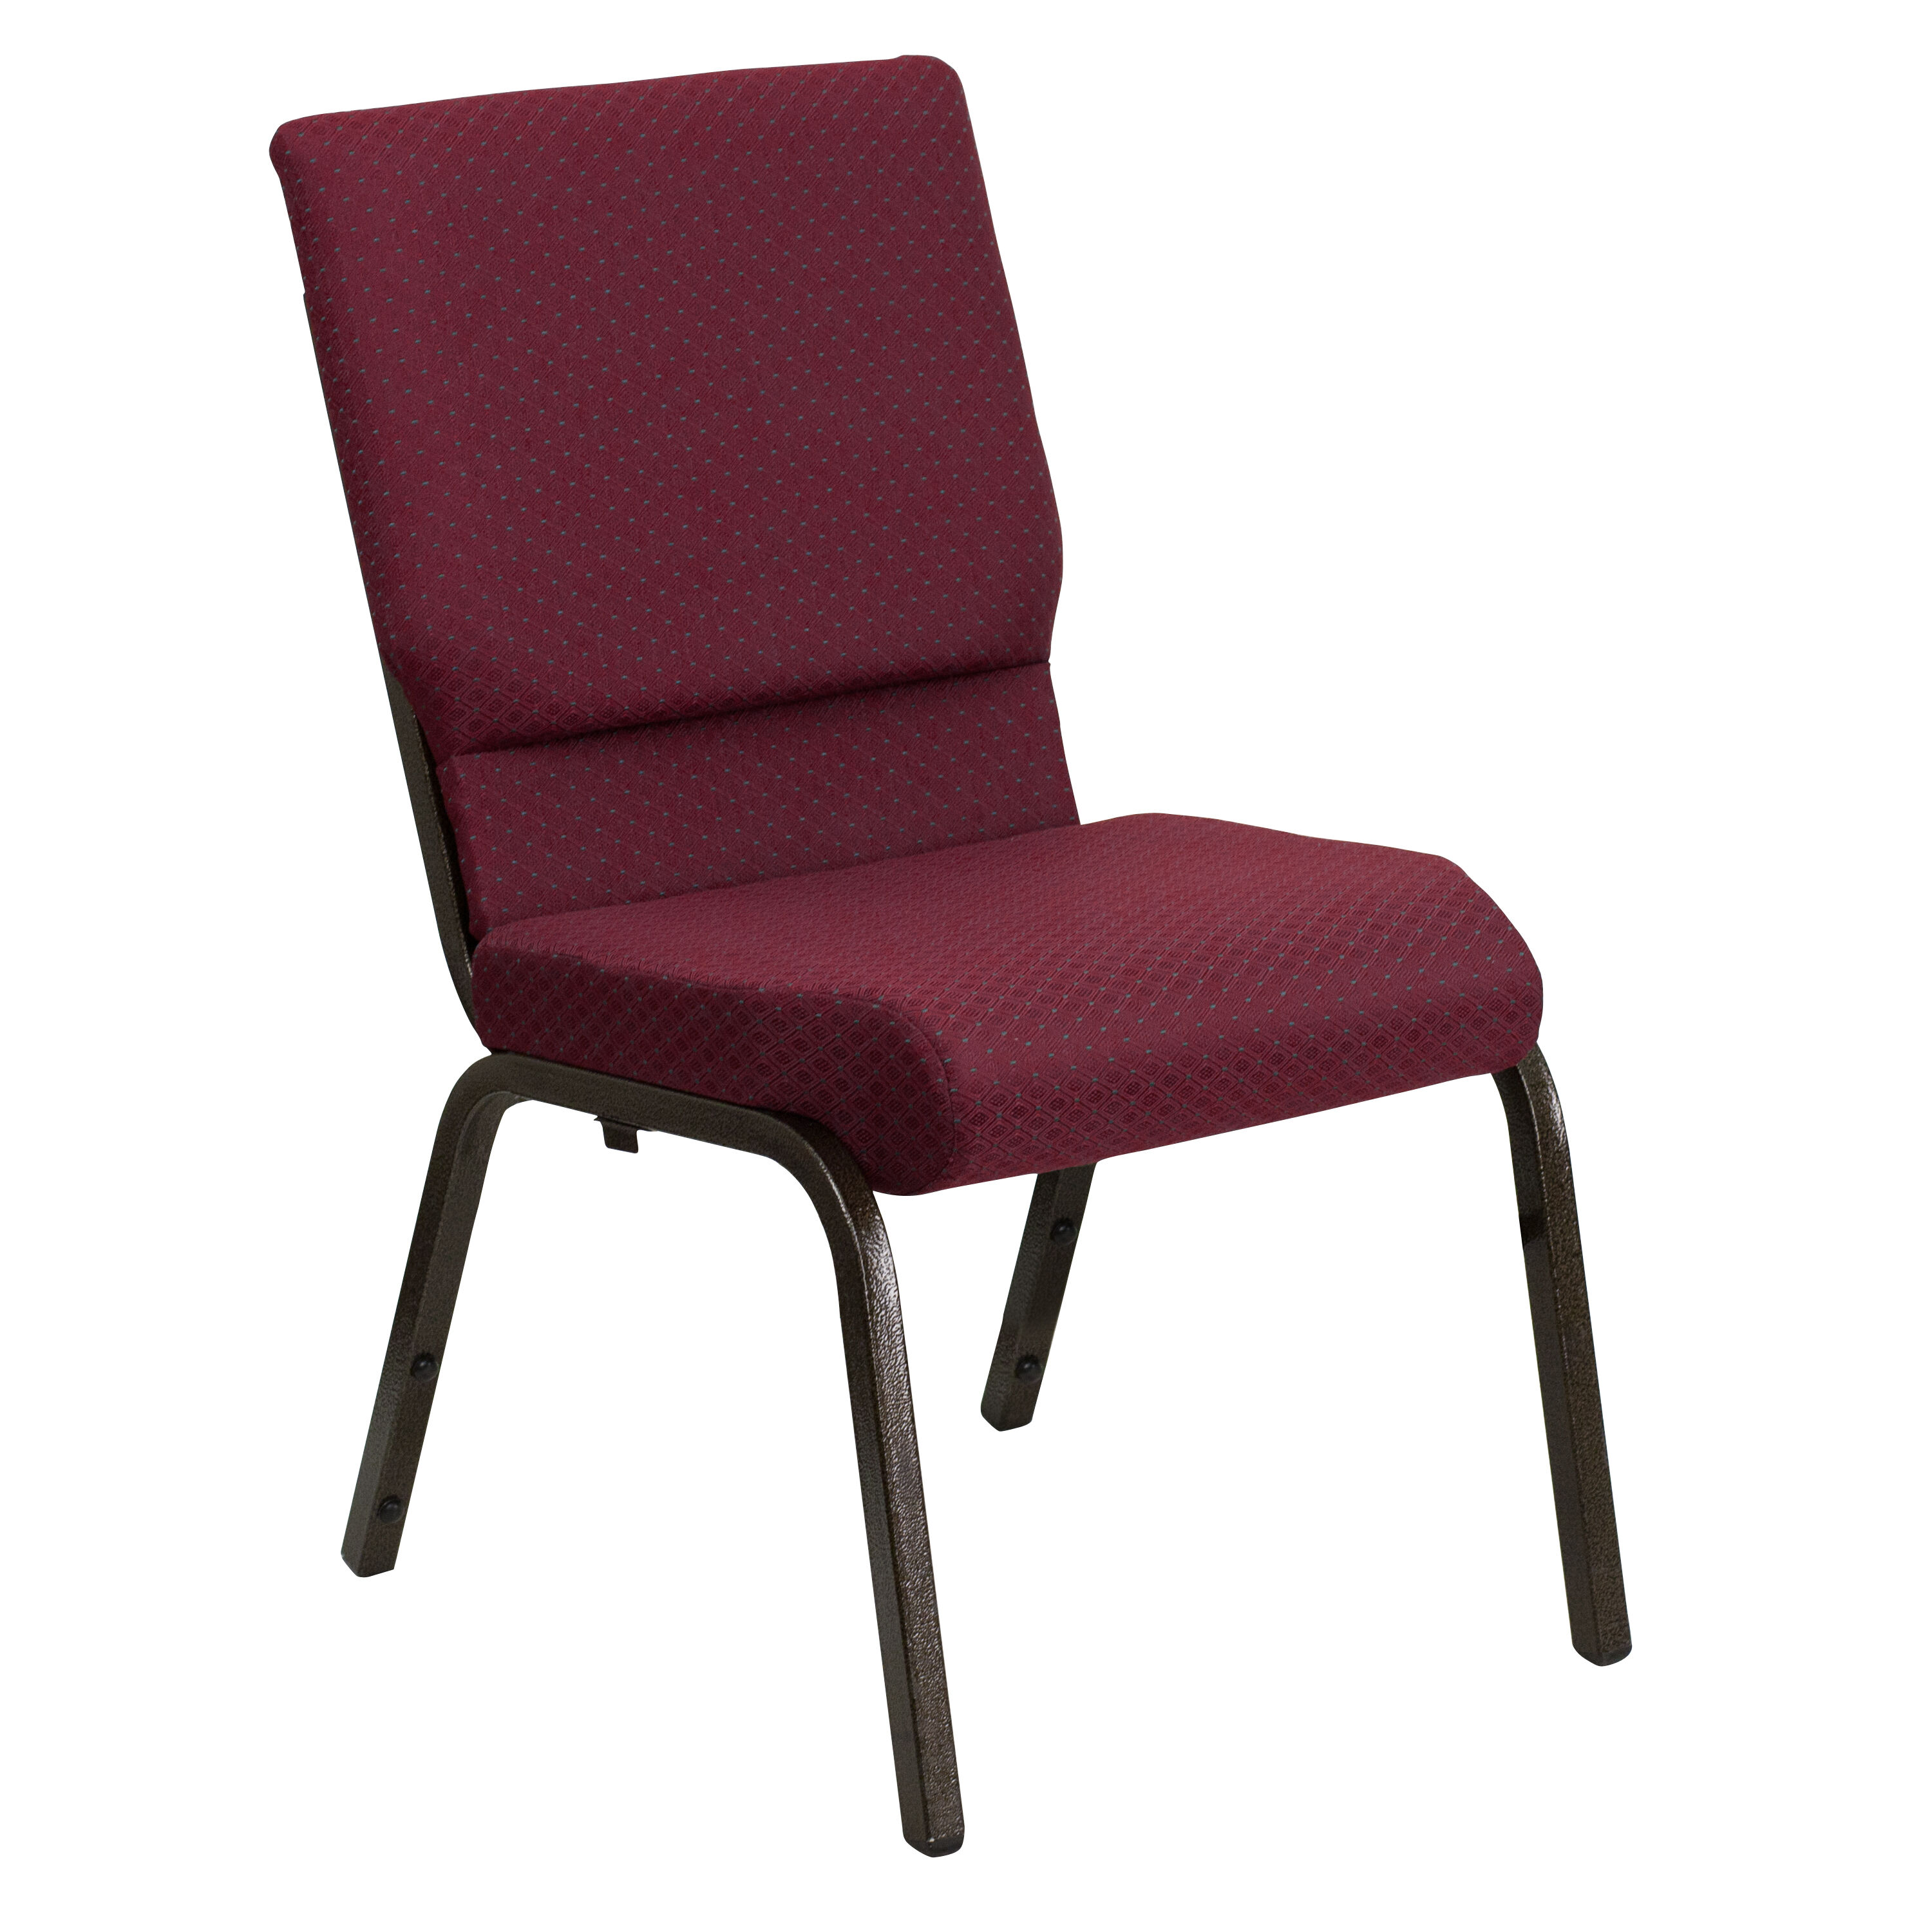 cathedral chairs rattan chair and ottoman burgundy fabric church xu ch 60096 byxy56 gg